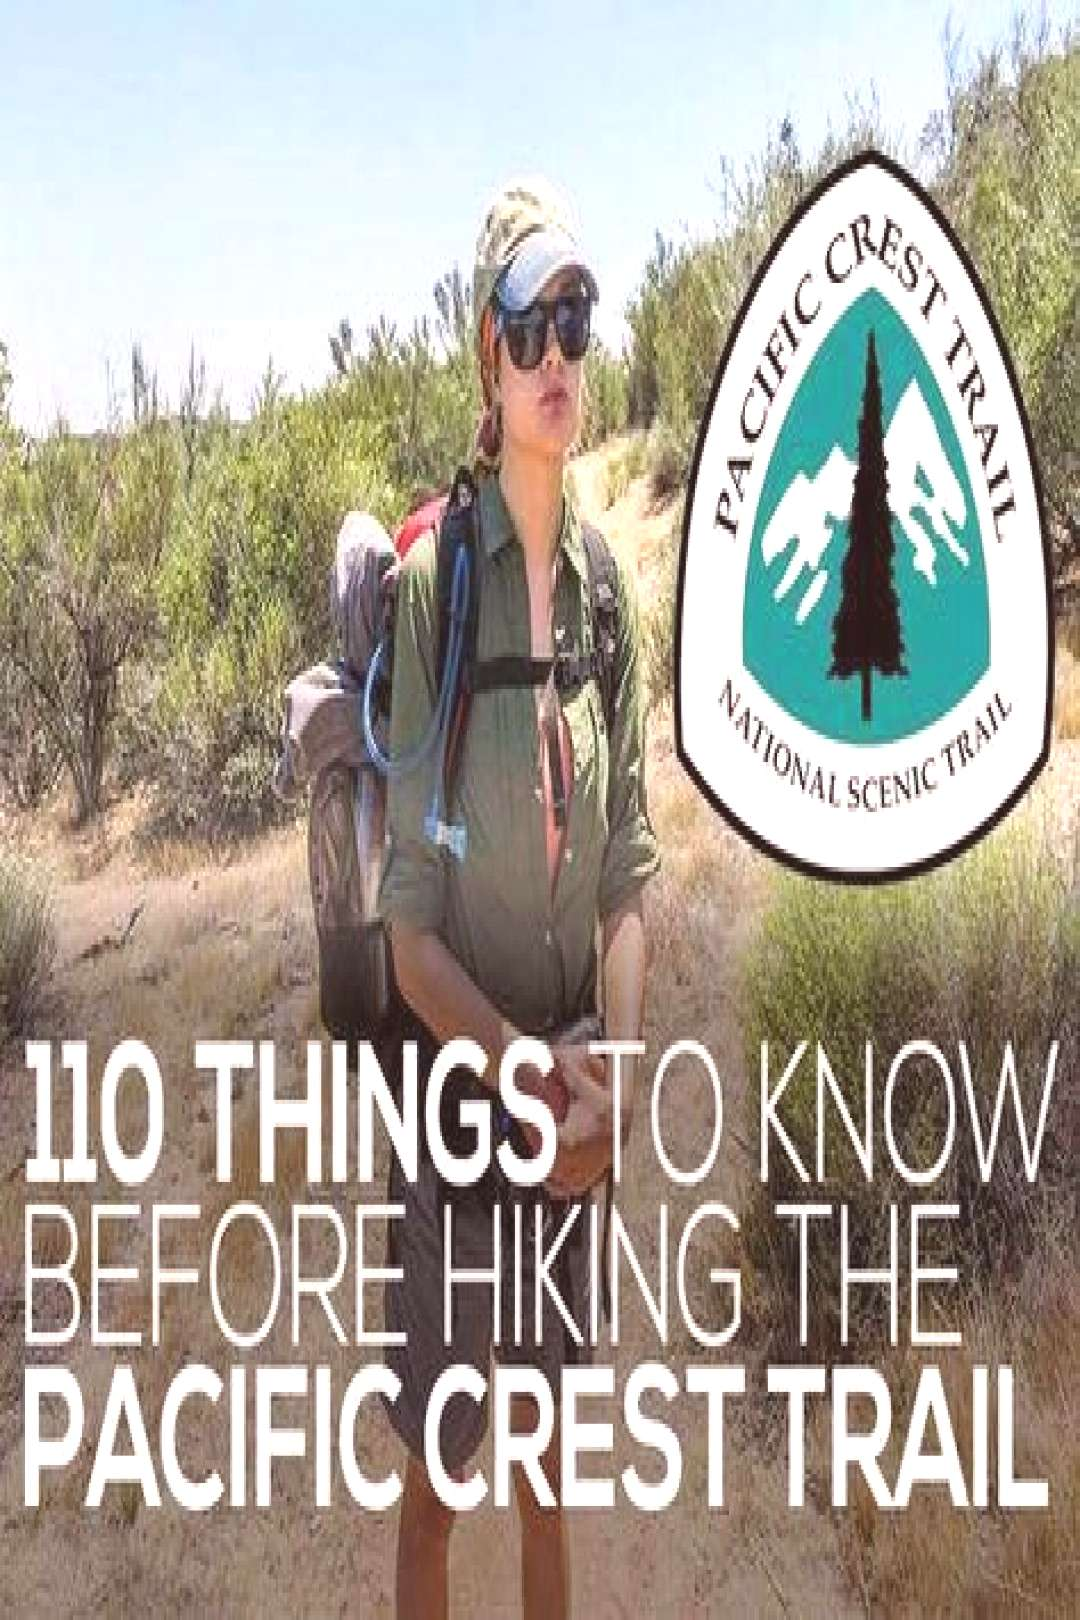 There are plenty of things to know before hiking the Pacific Crest Trail, but no matter how much PC